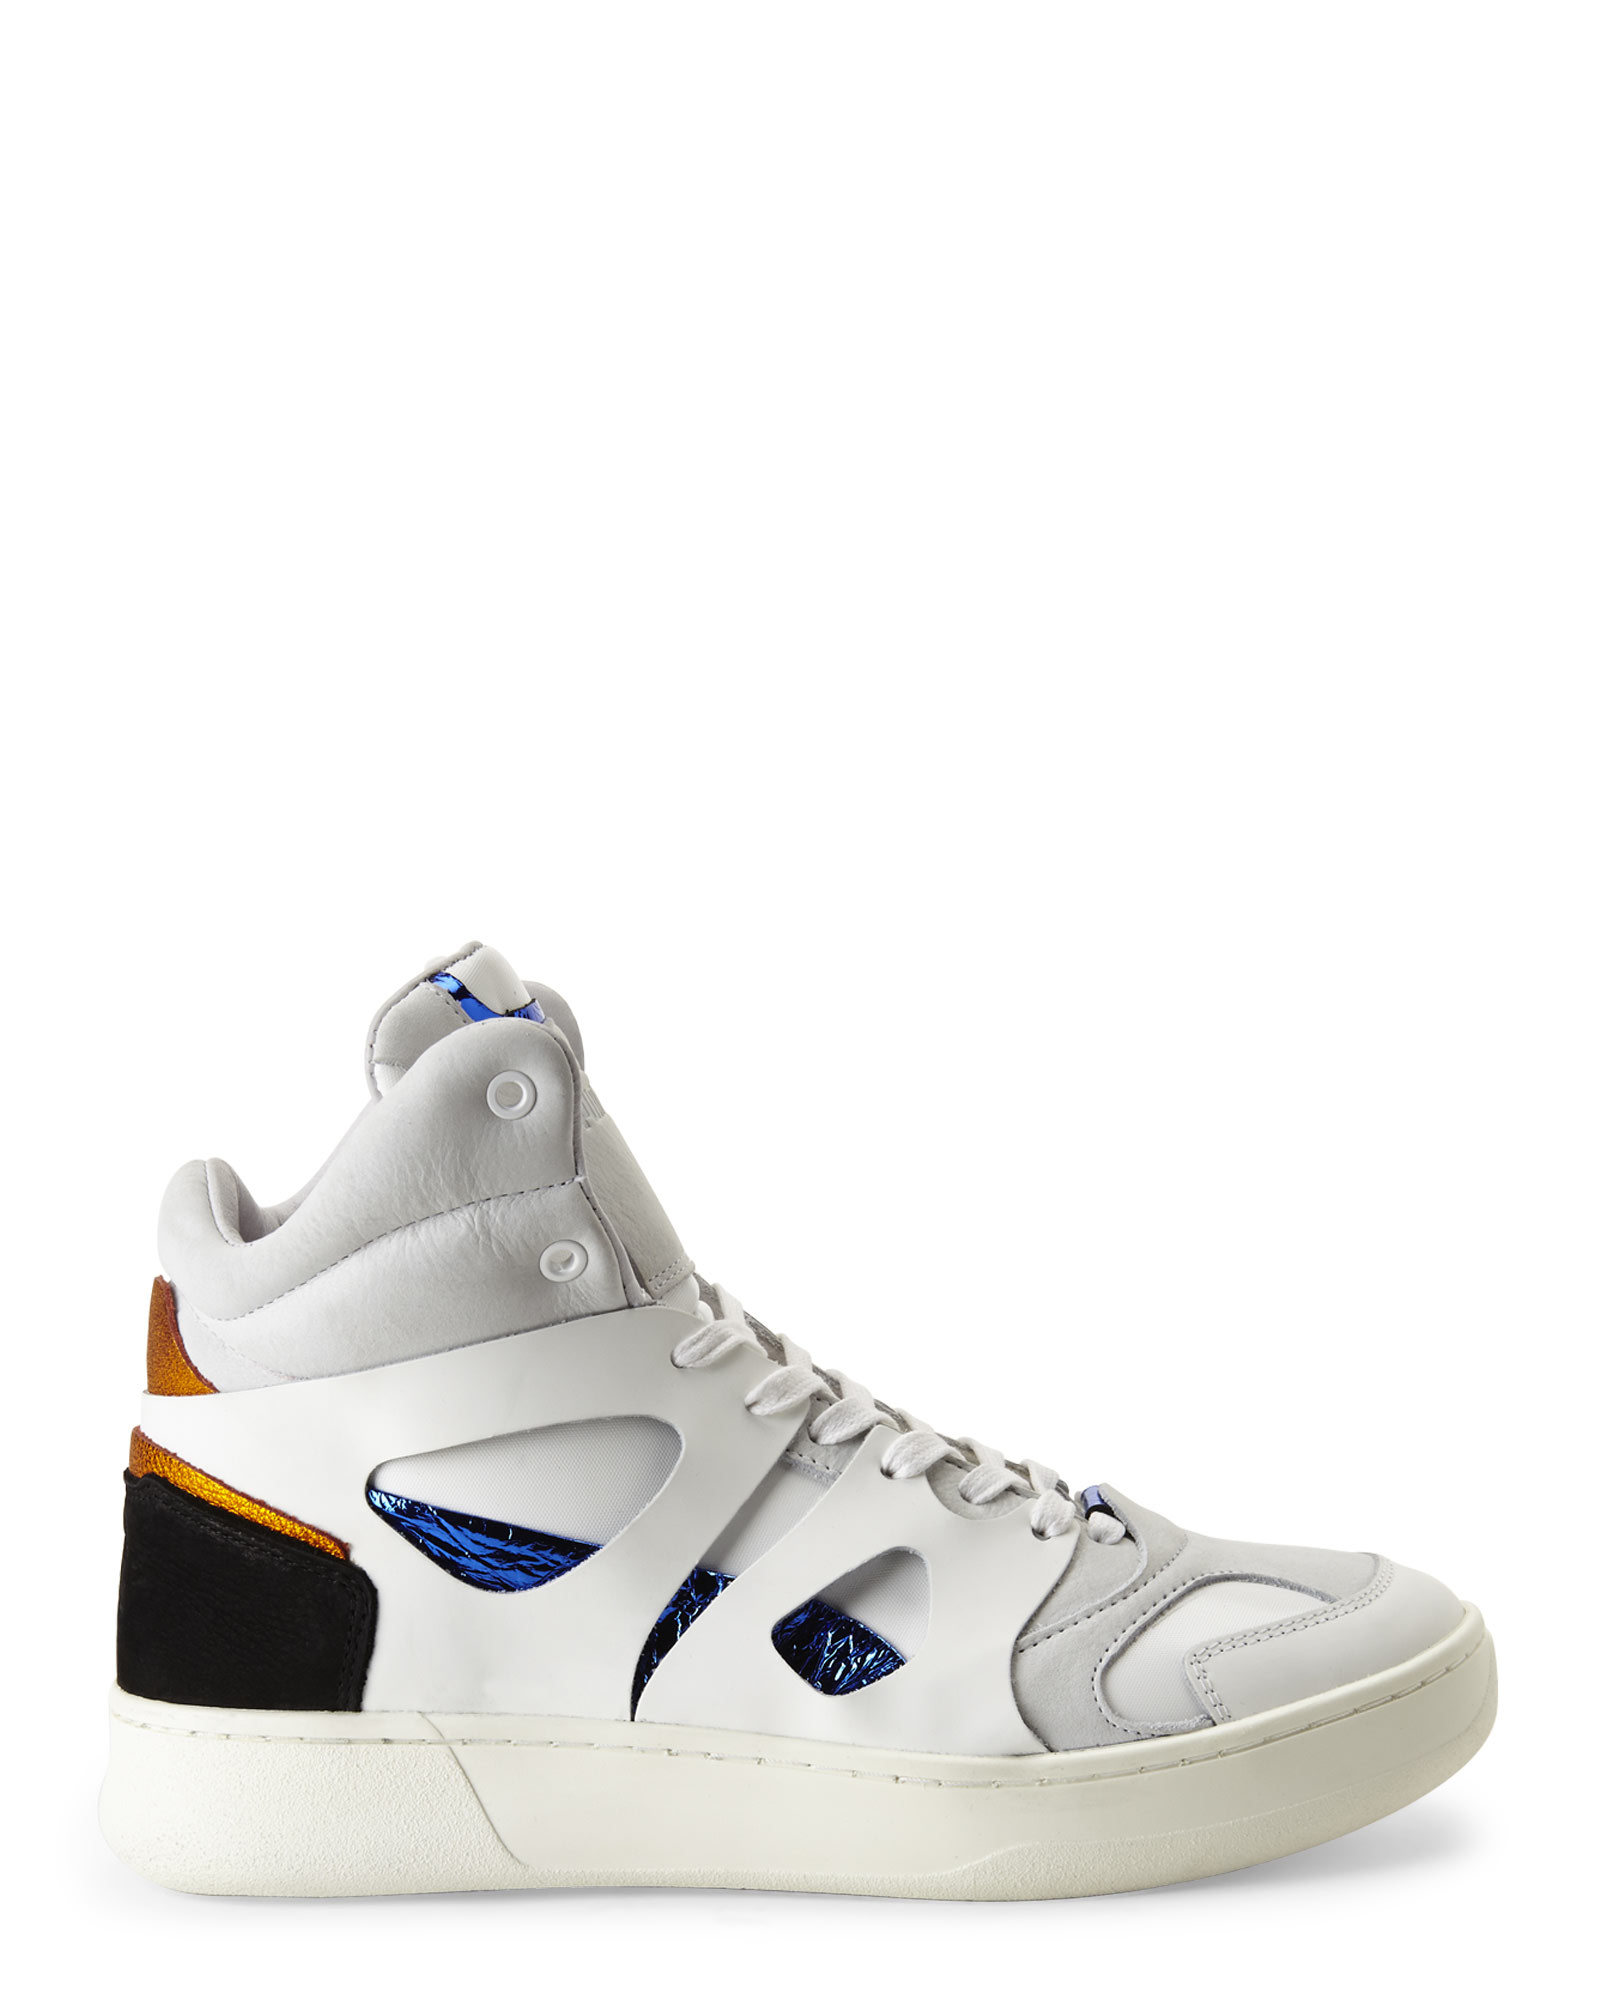 bfdf4858b9f Lyst - PUMA X Mcq By Alexander Mcqueen White Mid Move Sneakers for Men